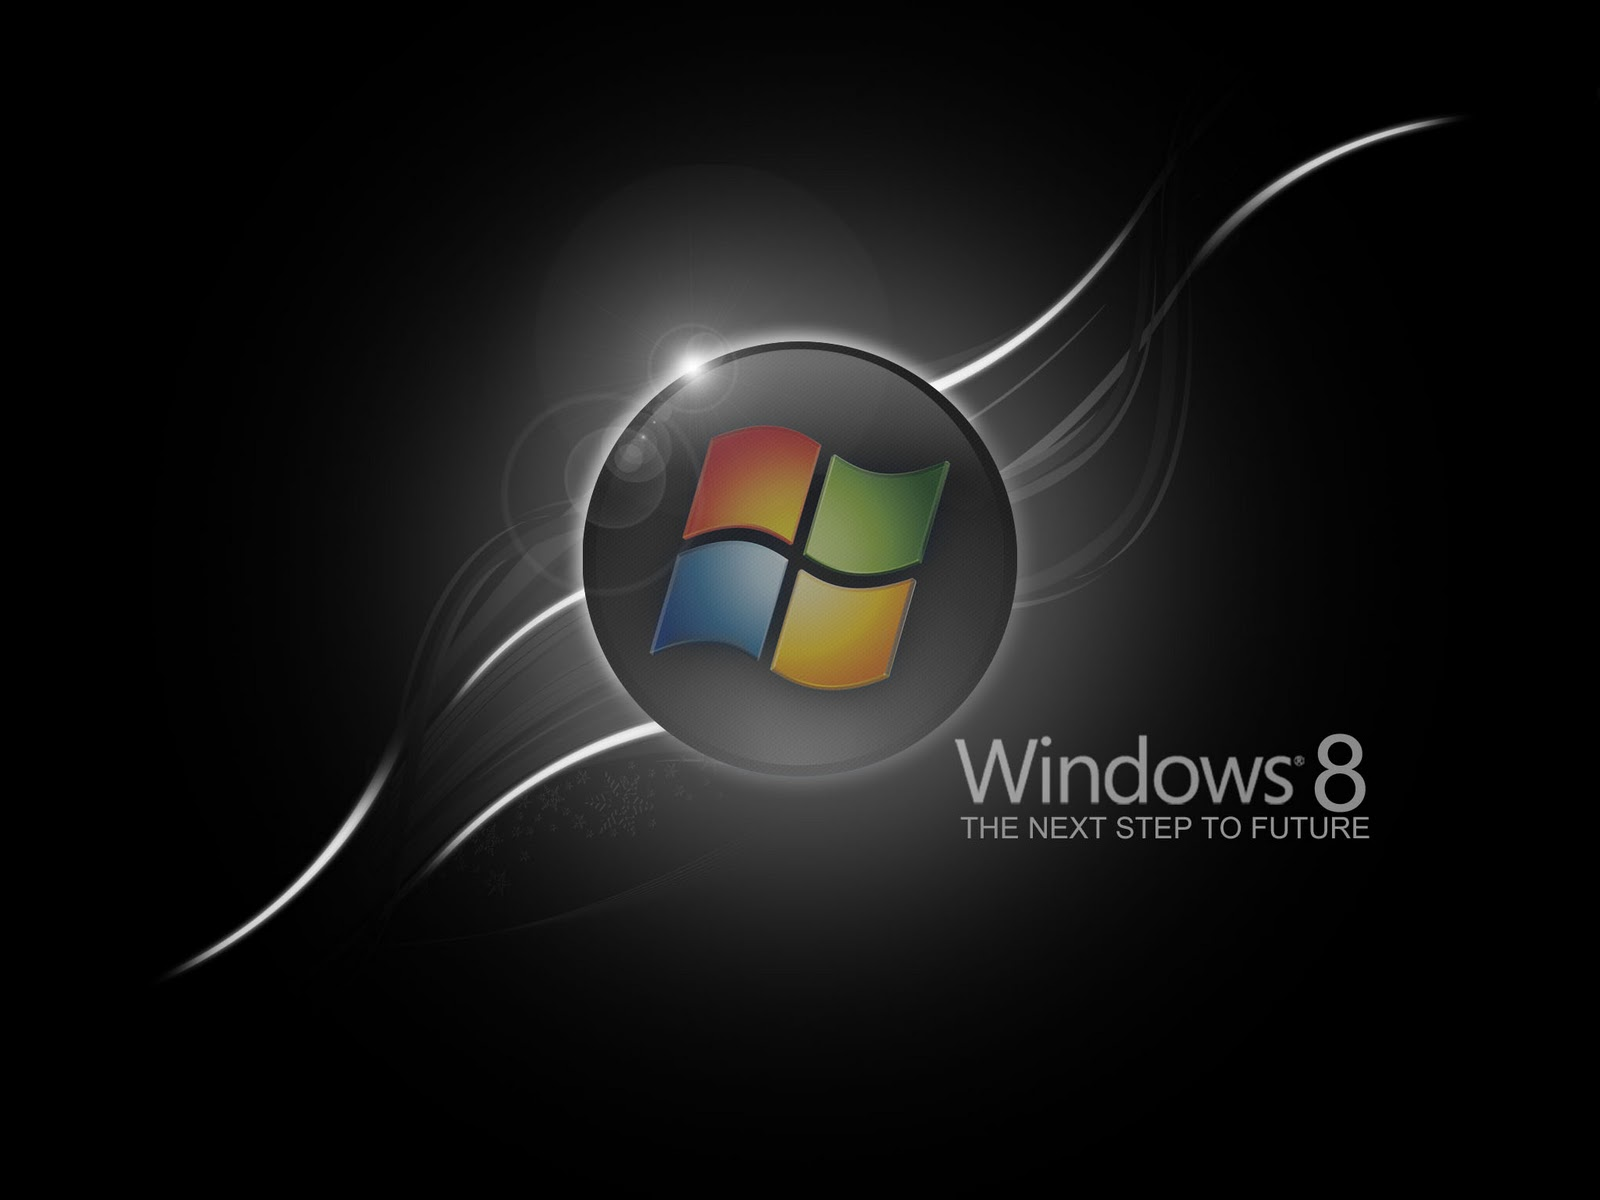 Windows 8 Black and Dark HD Wallpapers Wallpapers pictures images 1600x1200